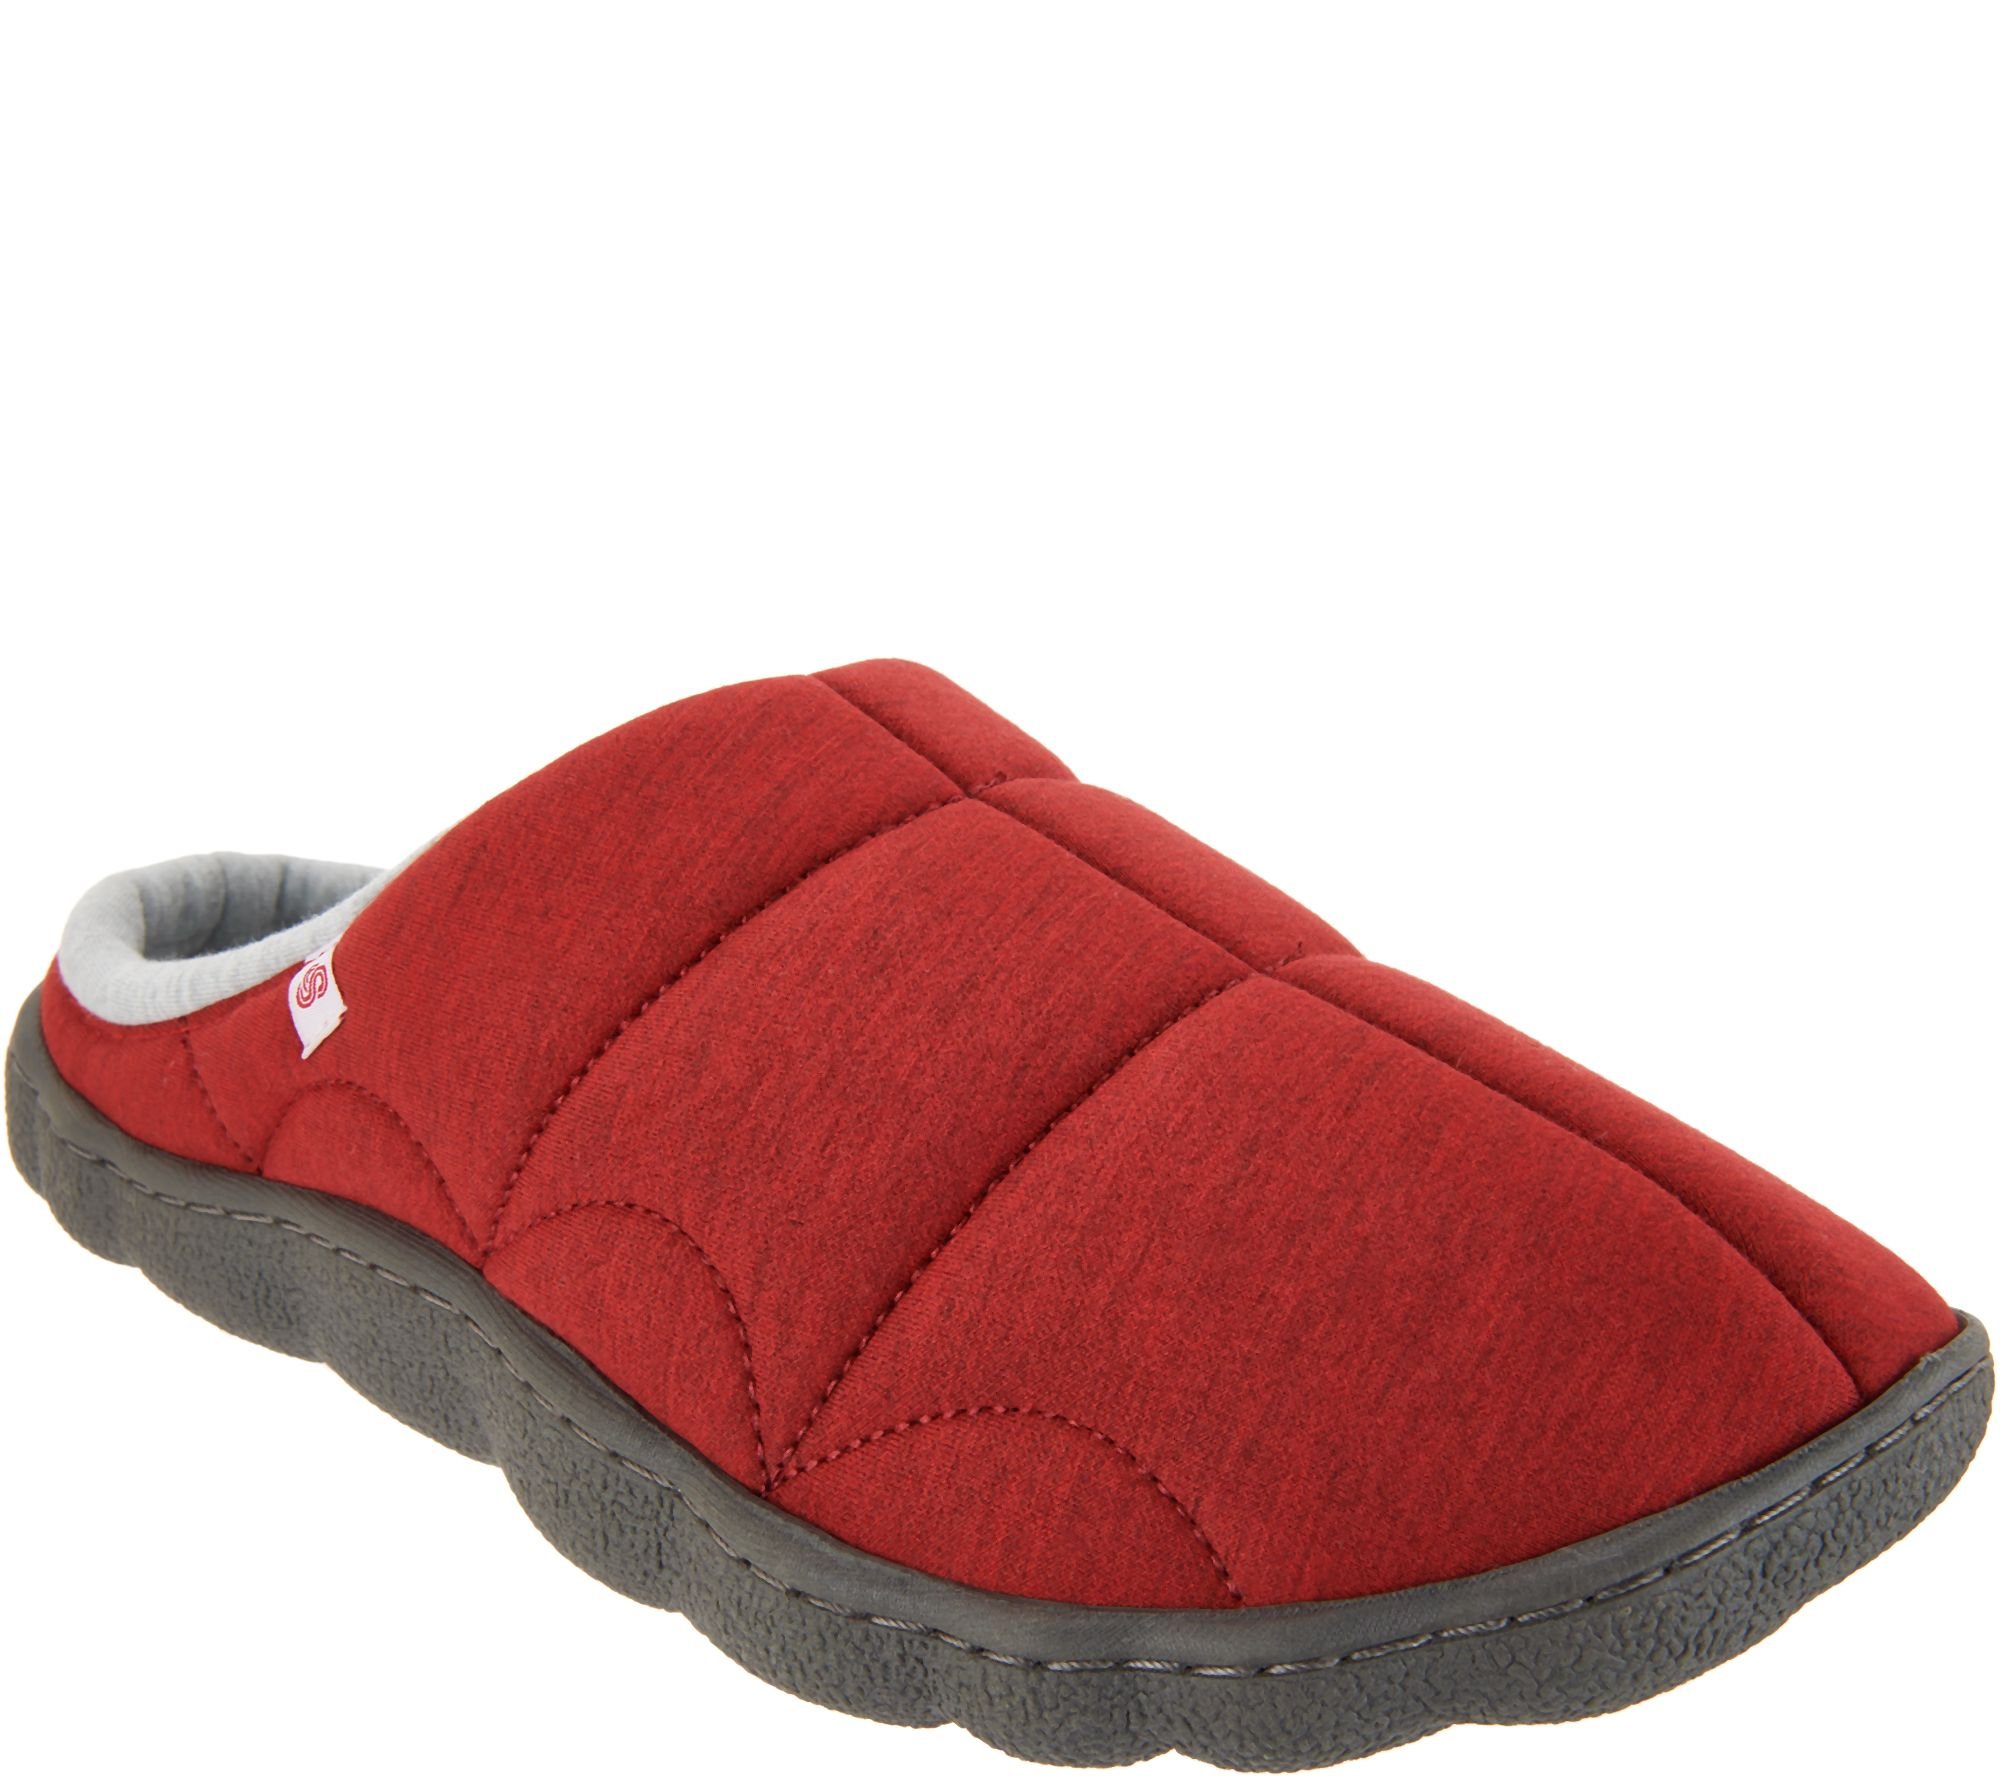 920235508eab5 CLOUDSTEPPERS by Clarks Jersey Slippers - Step Rest Clog - Page 1 — QVC.com